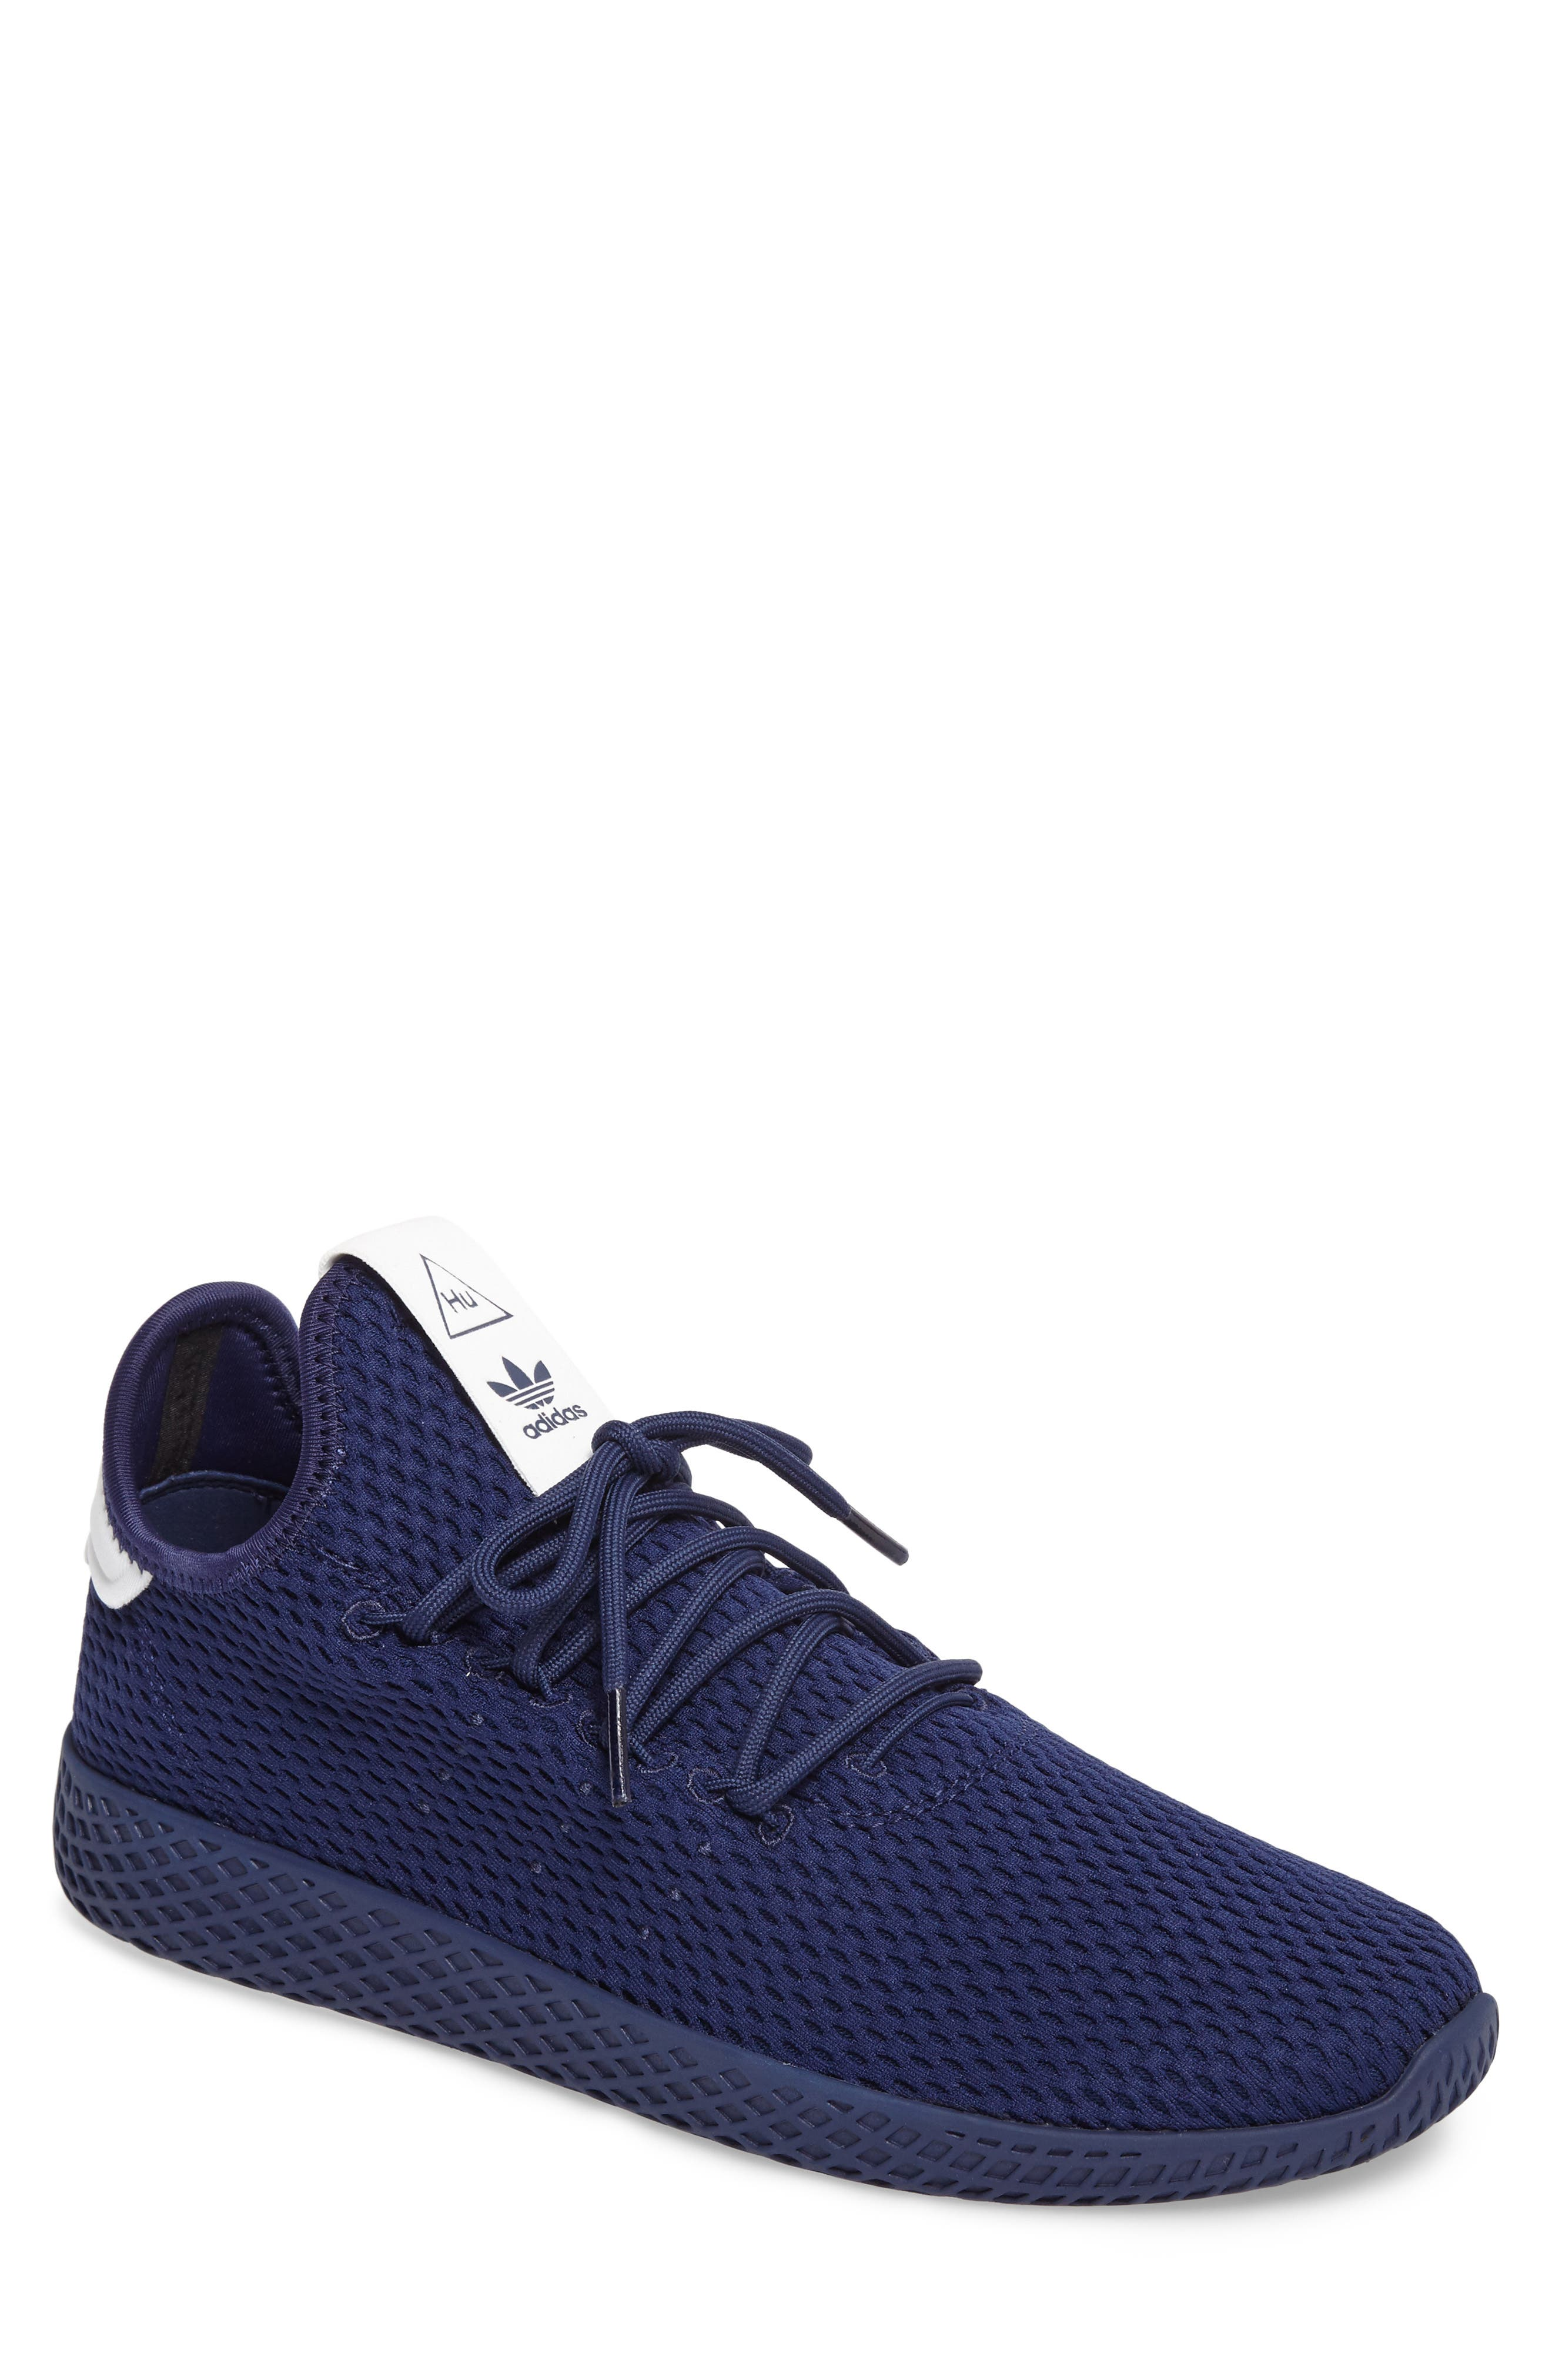 Main Image - adidas Originals x Pharrell Williams Mesh Sneaker (Men)